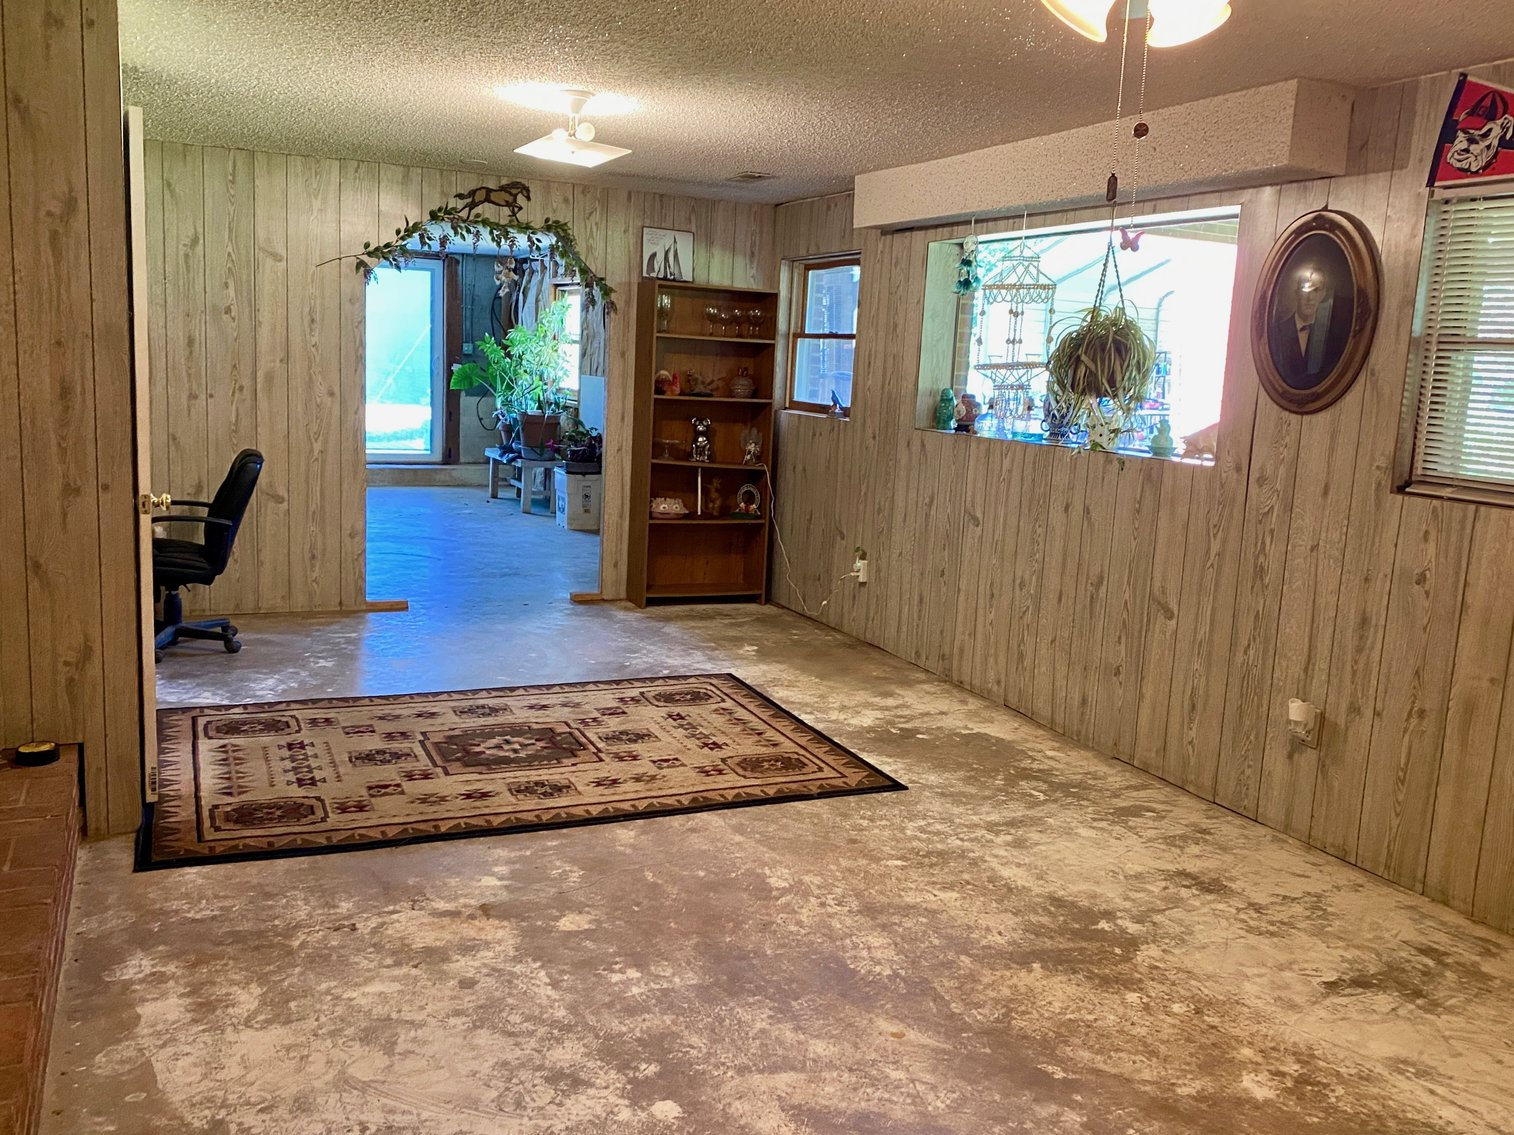 Image for 3 BR/2 BA Home on 3 +/- Acres w/Walk-Out Basement & Fenced Yard--Orange County, VA